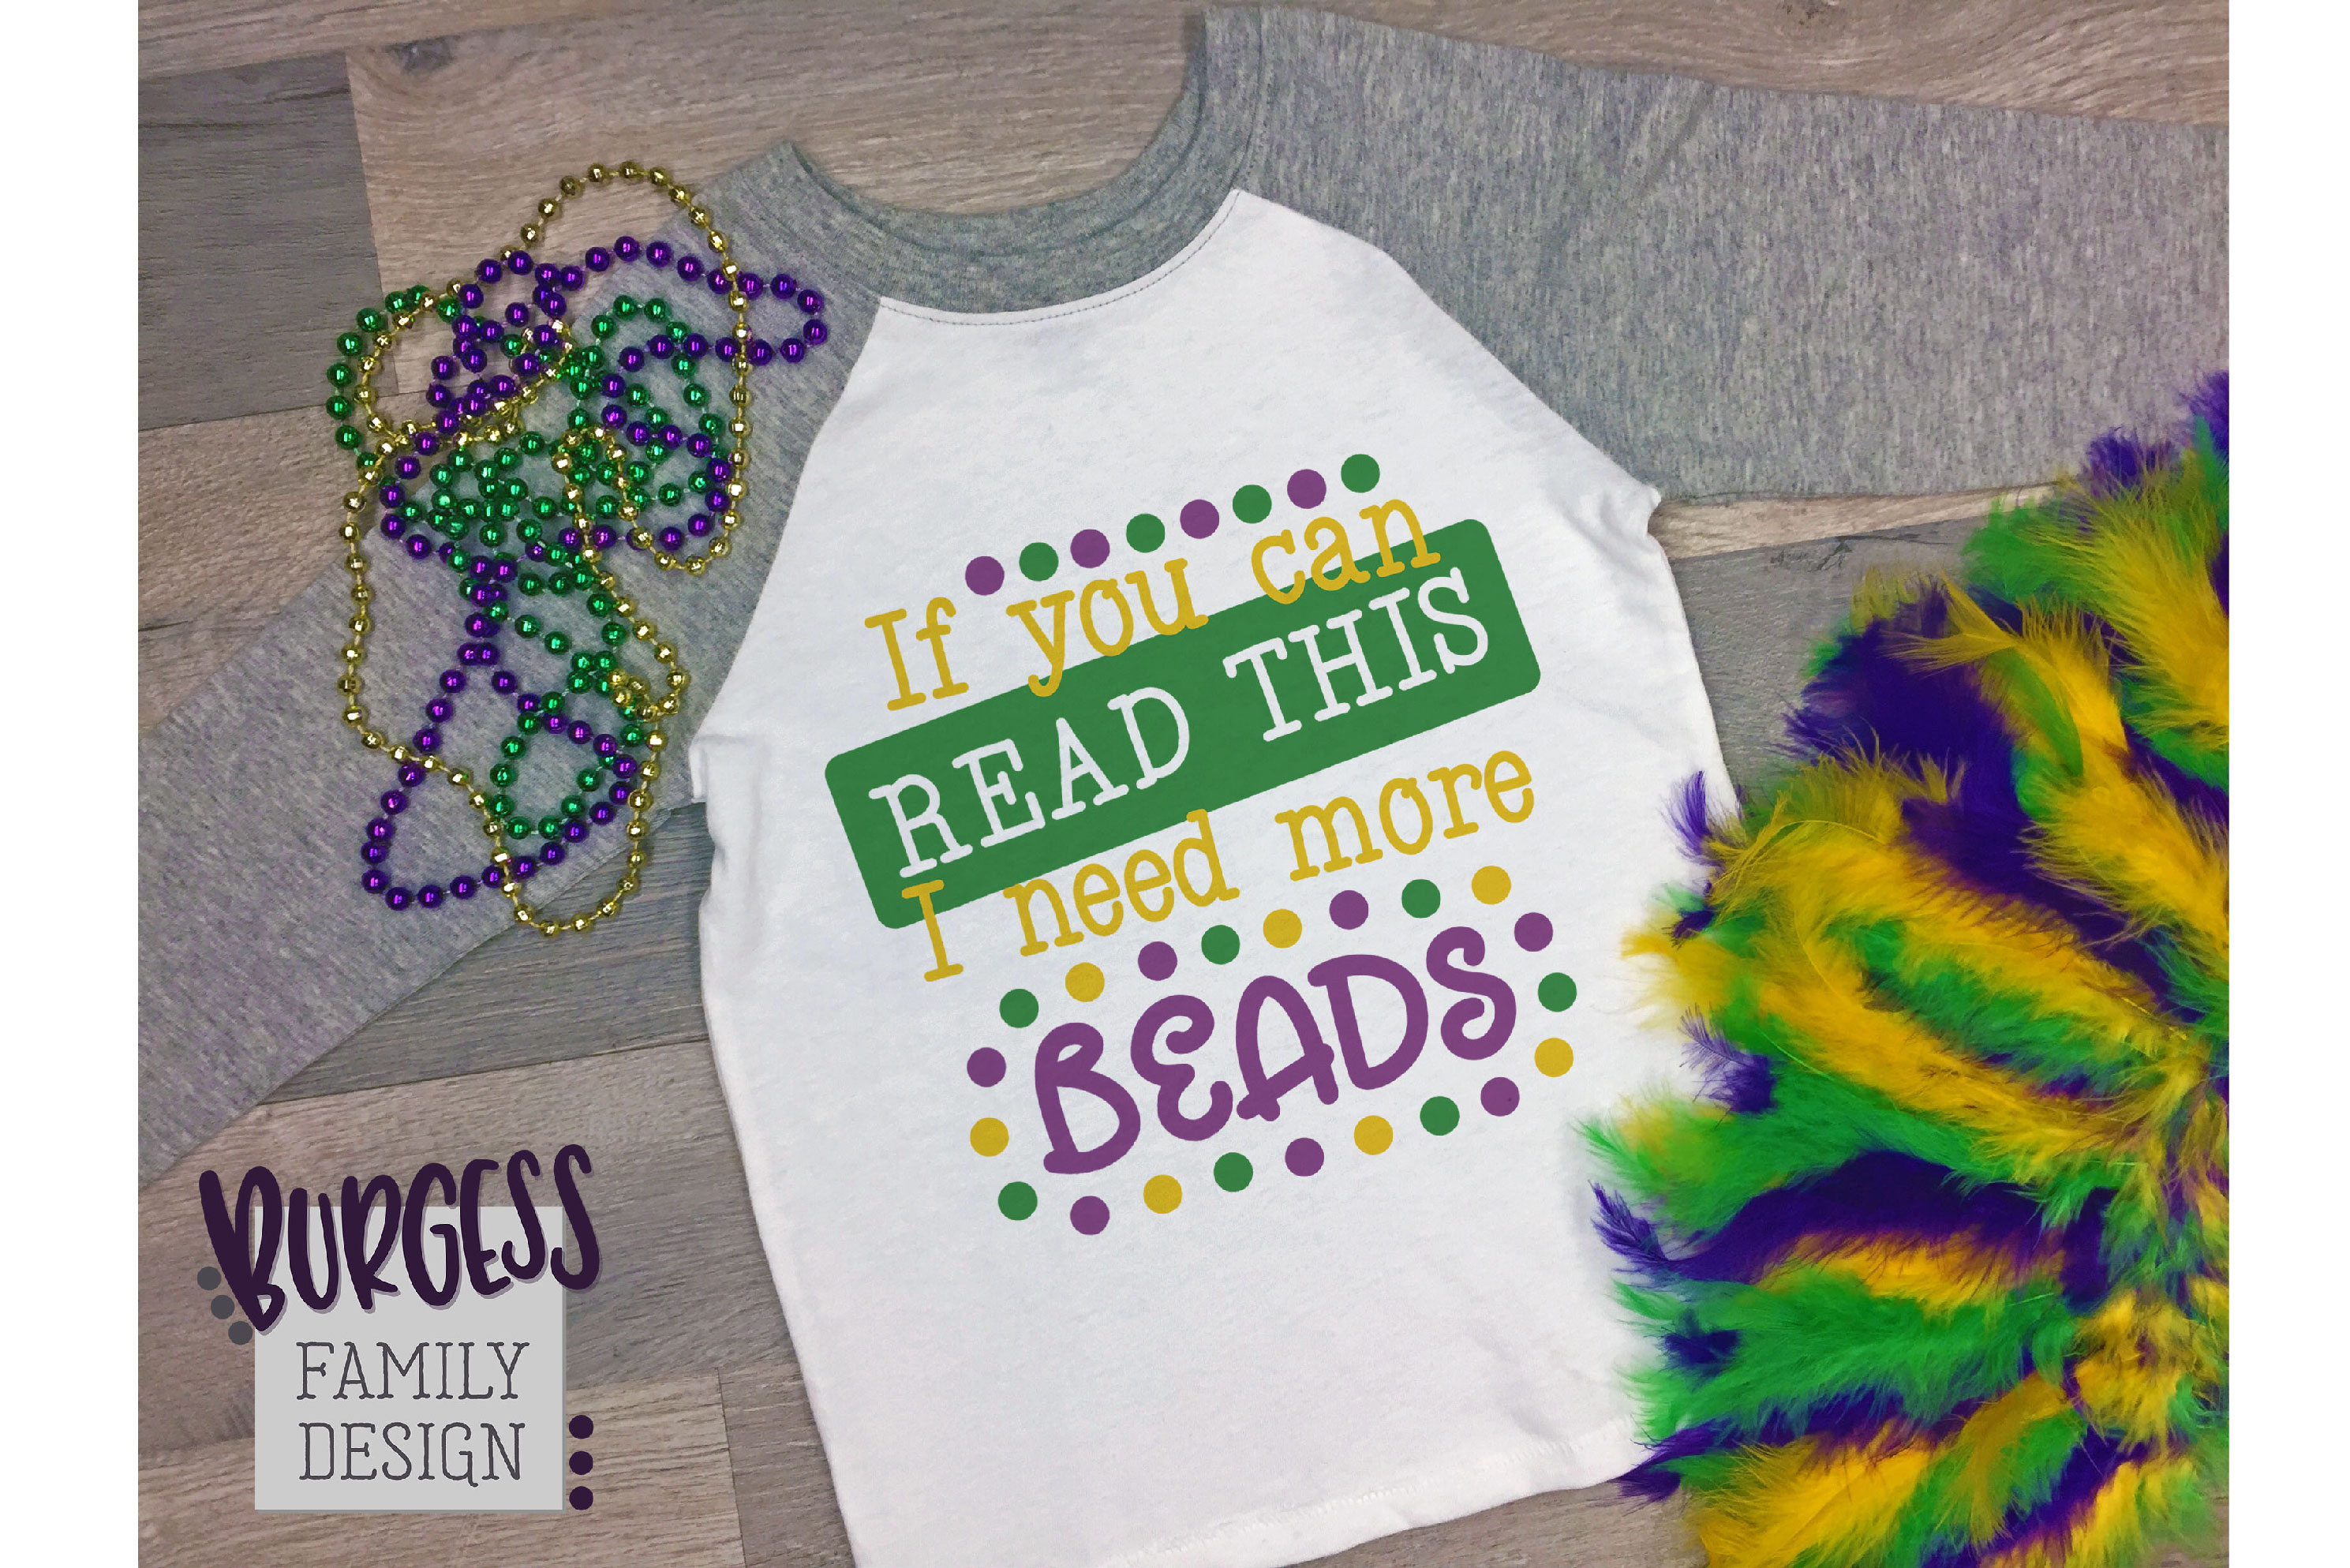 Mardi Gras If you can read this I need more beads | Cut file example image 1